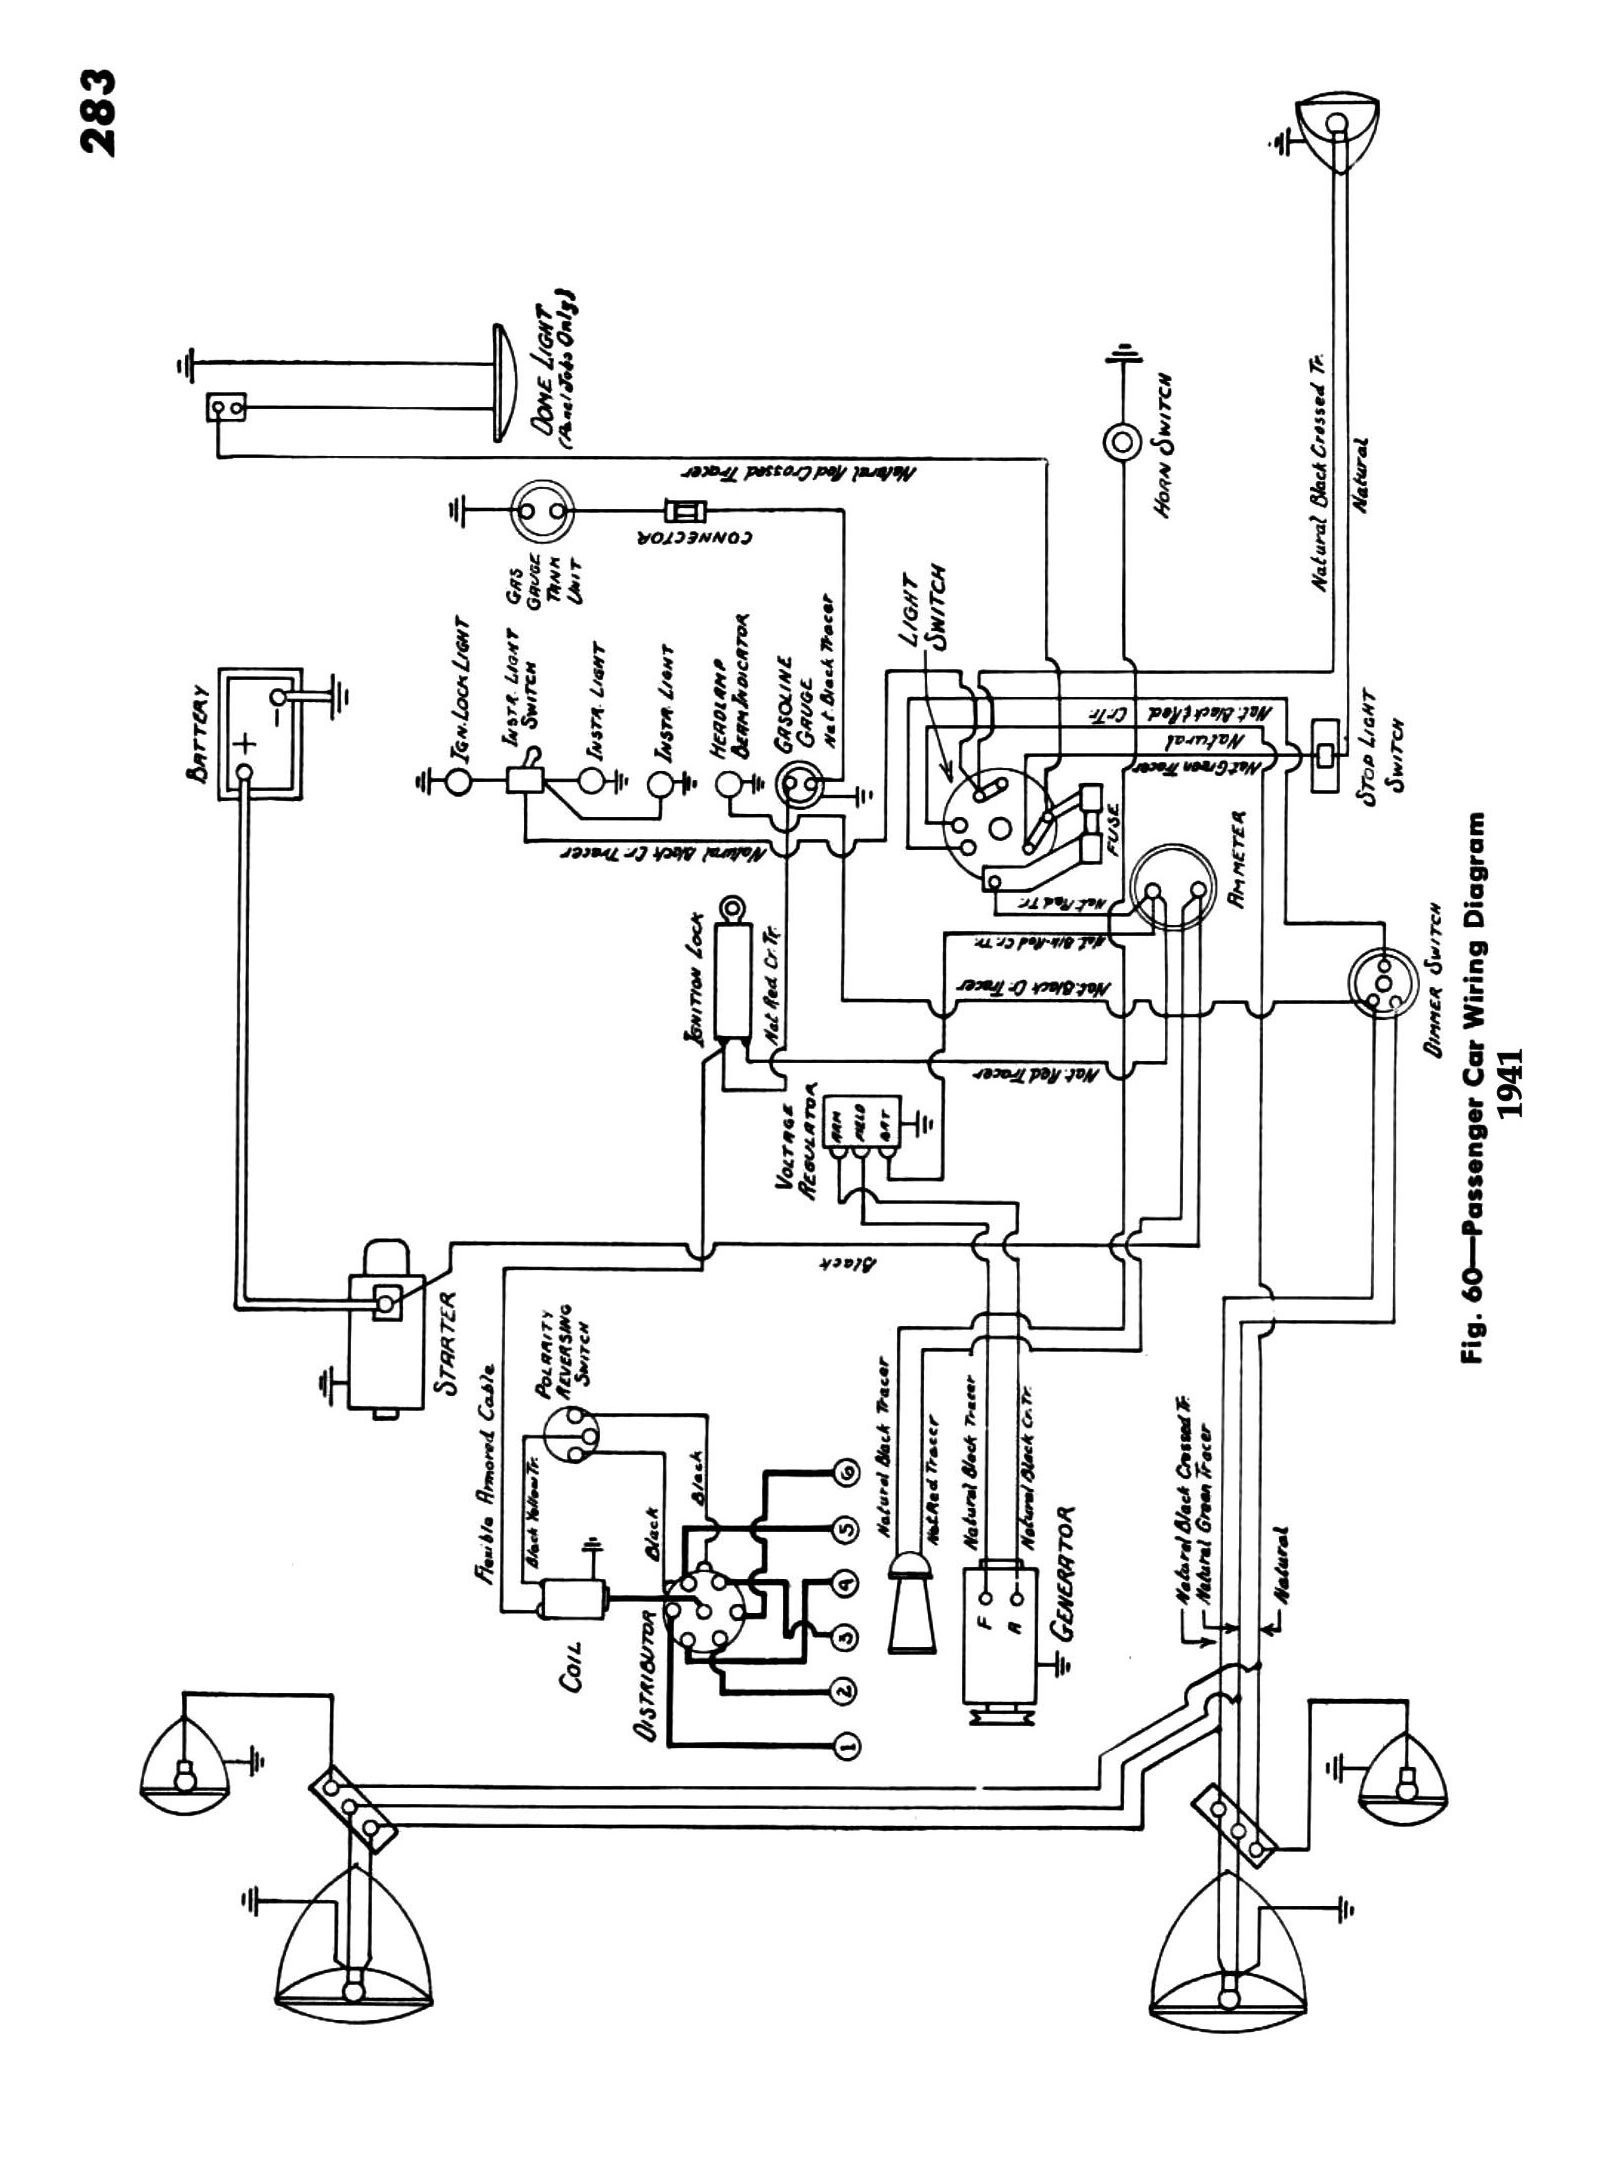 1999 International 4700 Wiring Diagram Inspirational | Wiring ...